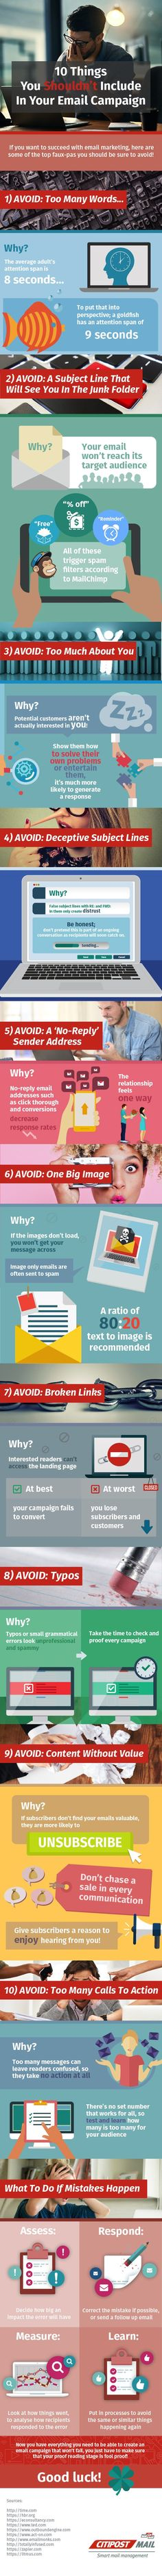 10 Things You Shouldn't Include in Your #EmailMarketing Campaigns #Infographic